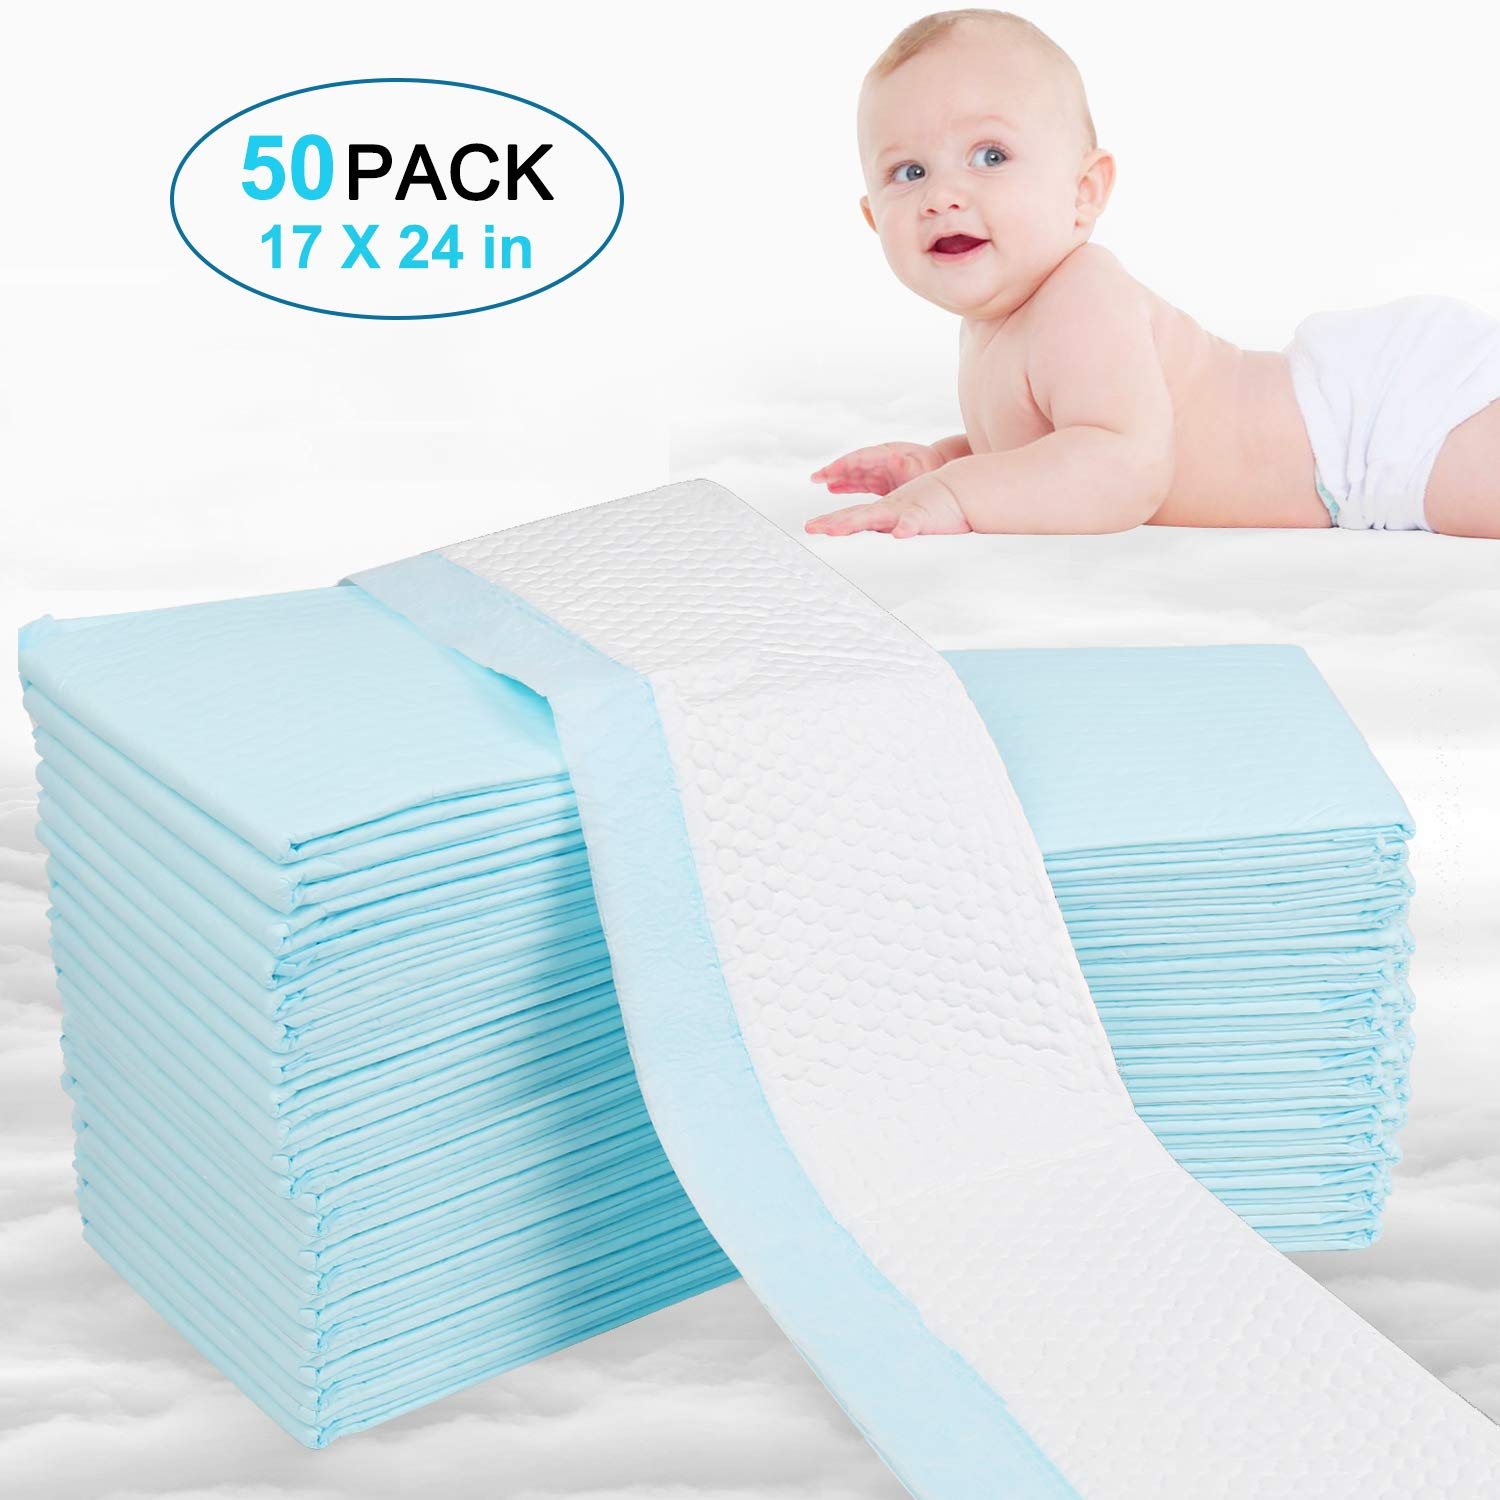 OBloved Disposable Underpads for Baby, 50 Pack(18×24 inch), Leak-Proof Breathable Incontinence Diaper Changing Pad, Heavy Absorbency, and Soft Cover for Bed (Blue) by OBloved